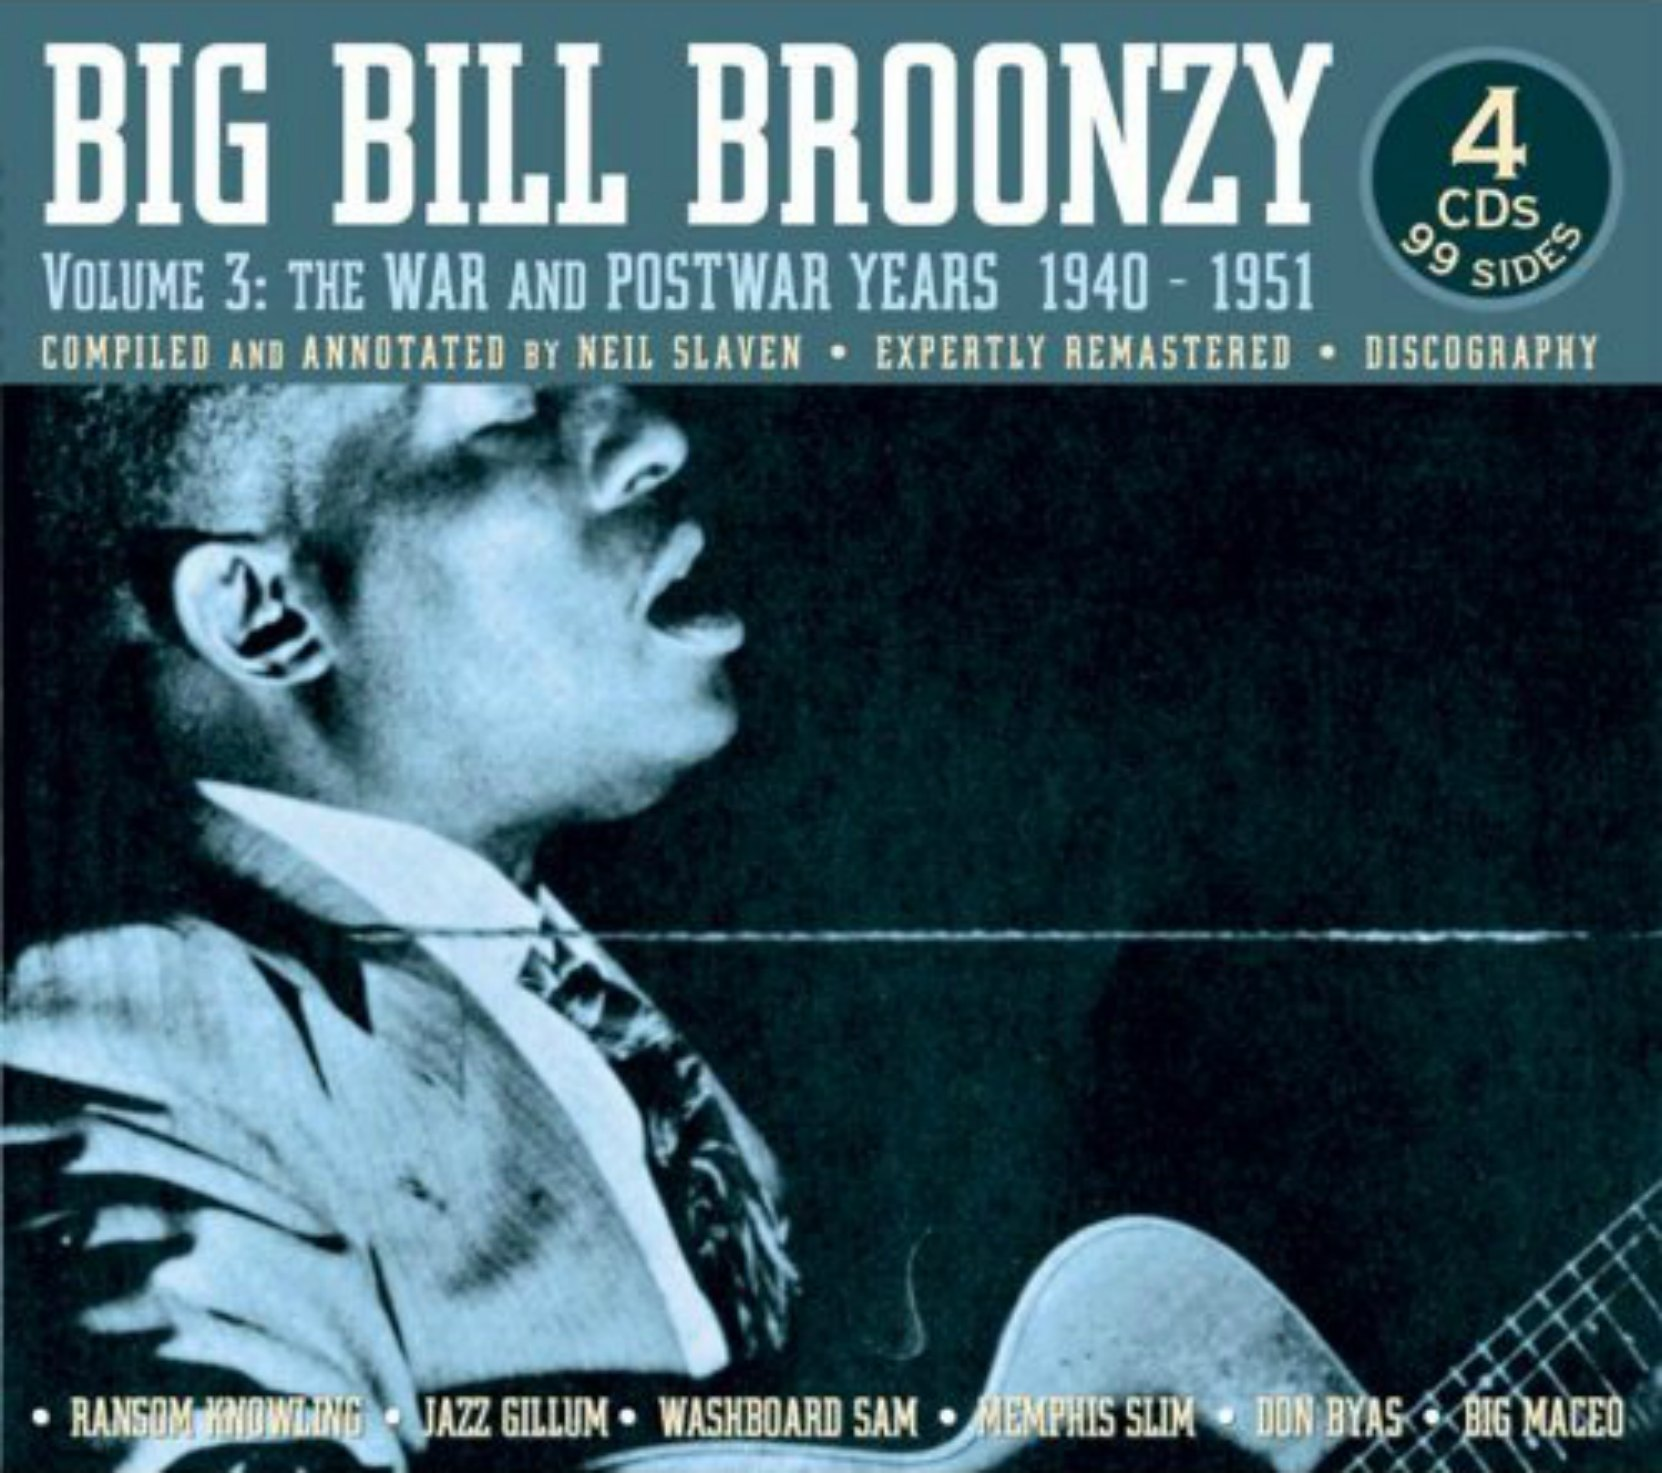 CD cover. Big Bill Broonzy, Volume 2: The War and Postwar years 1940-51, on JSP Records